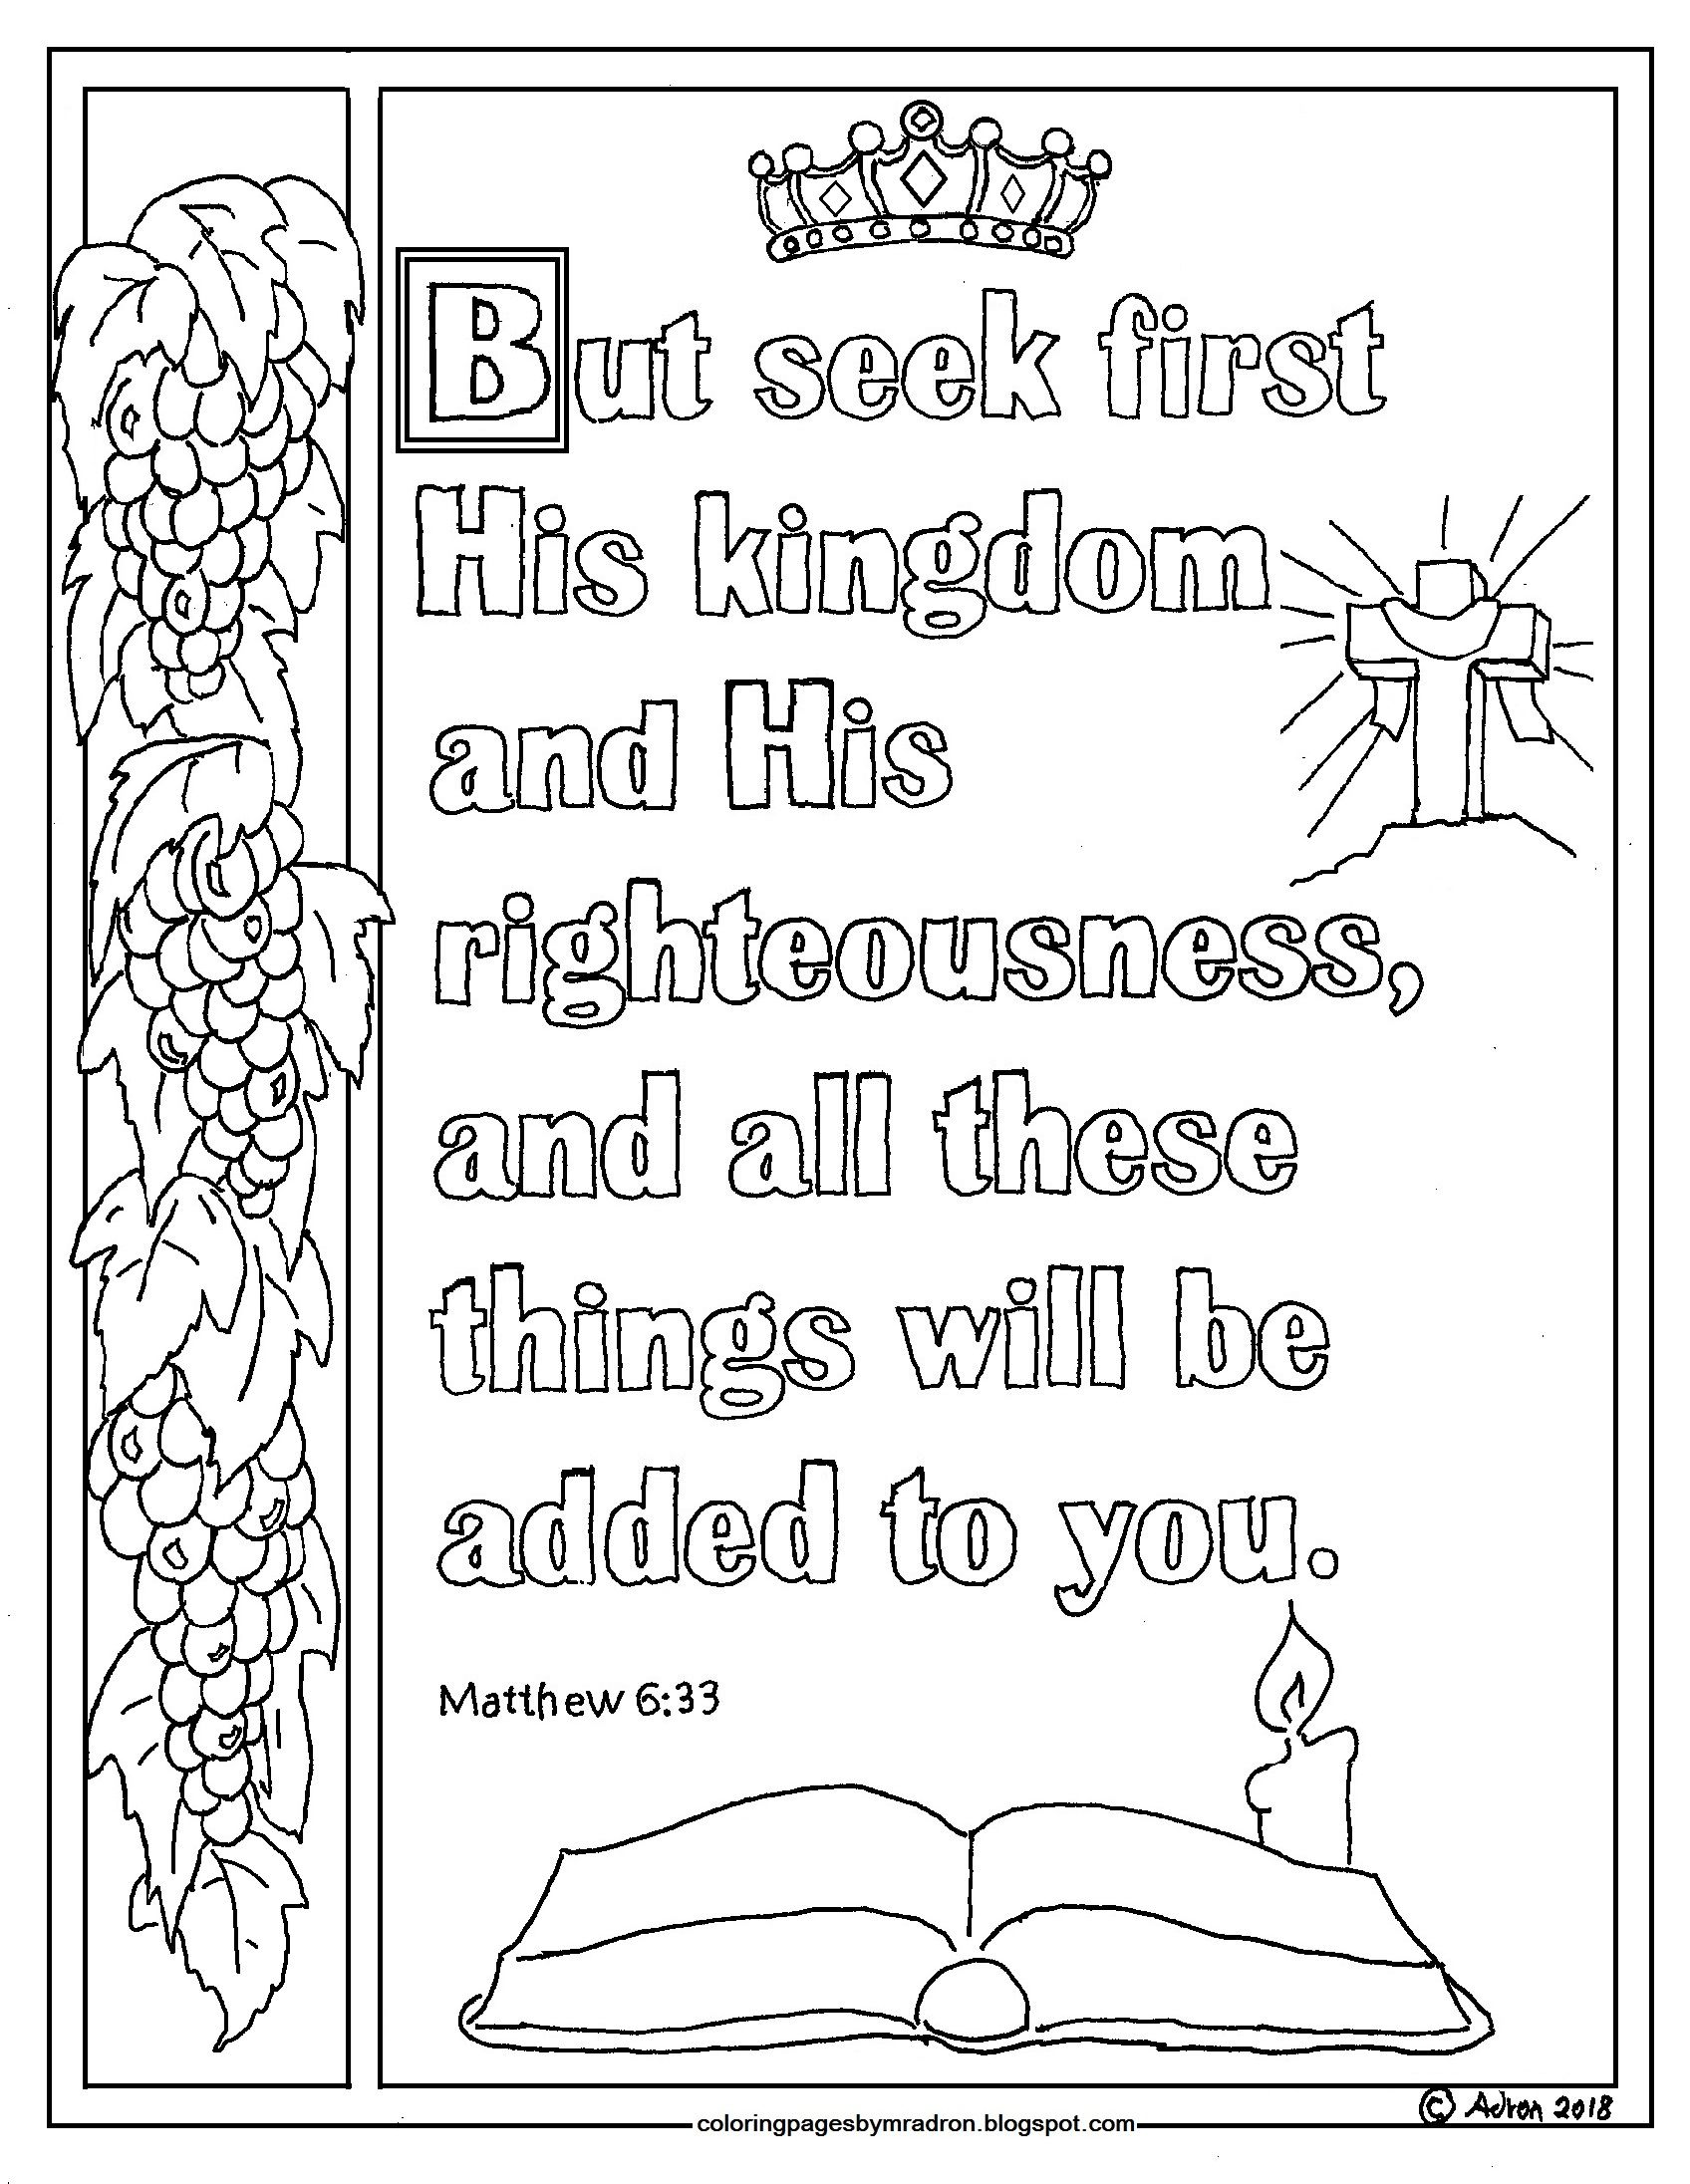 Pin by Adron Dozat on Coloring Pages for Kid | Pinterest | Coloring ...